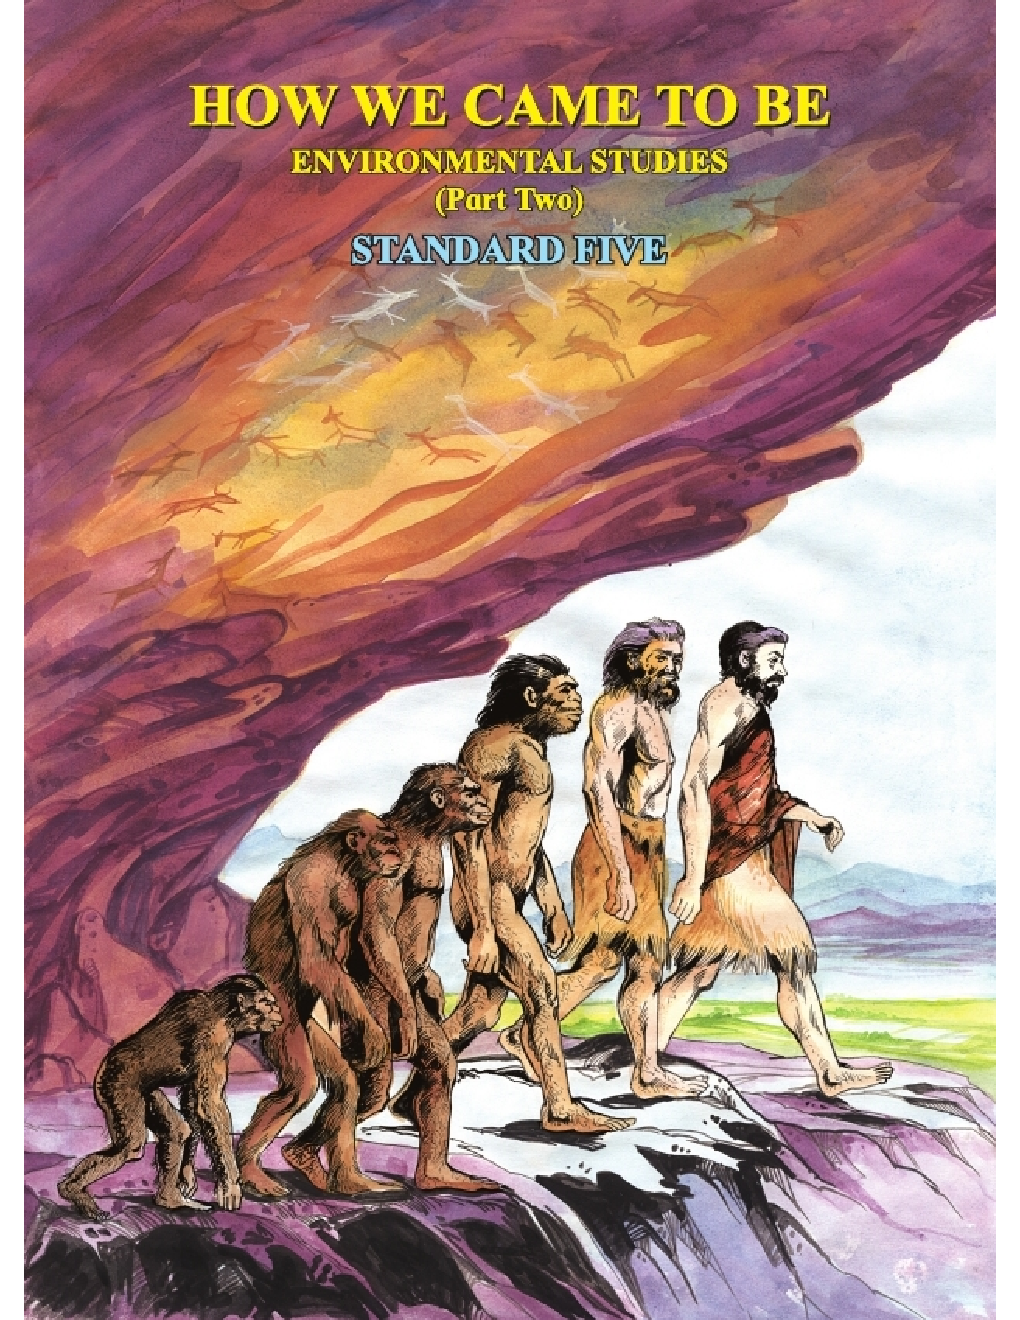 Maharashtra School Textbook How We Come To Be (Environmental Studies Part-2) For Class-5 - Page 1